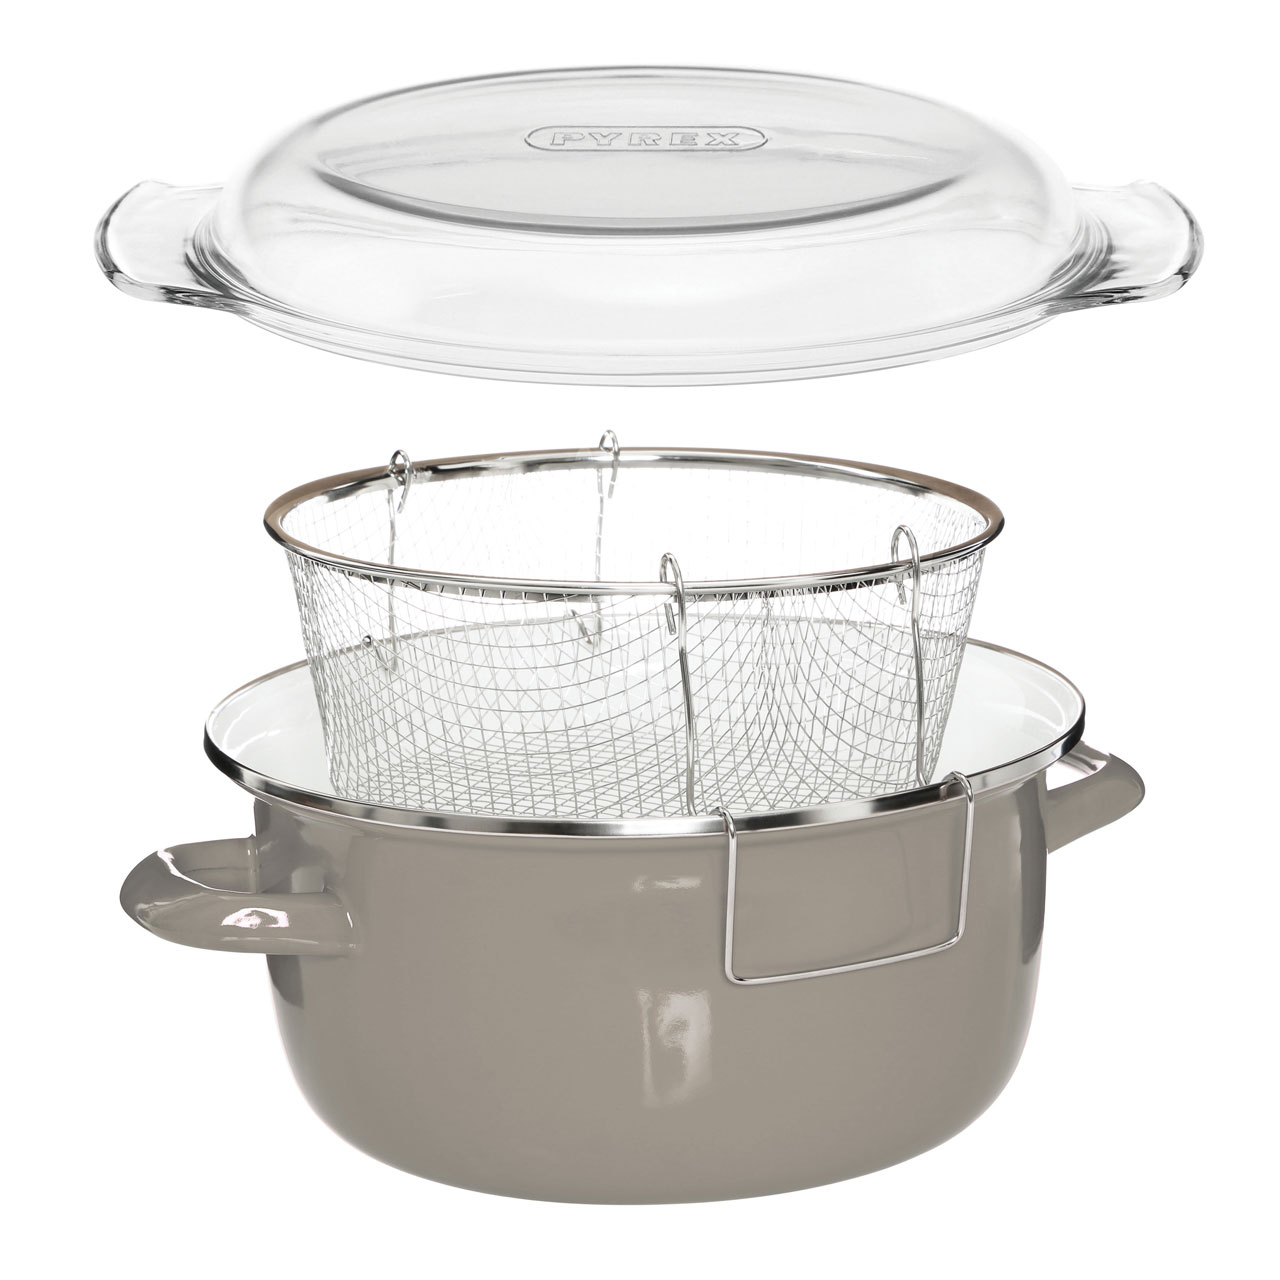 Prime Furnishing Deep Fryer With Glass Pyrex Lid - Grey